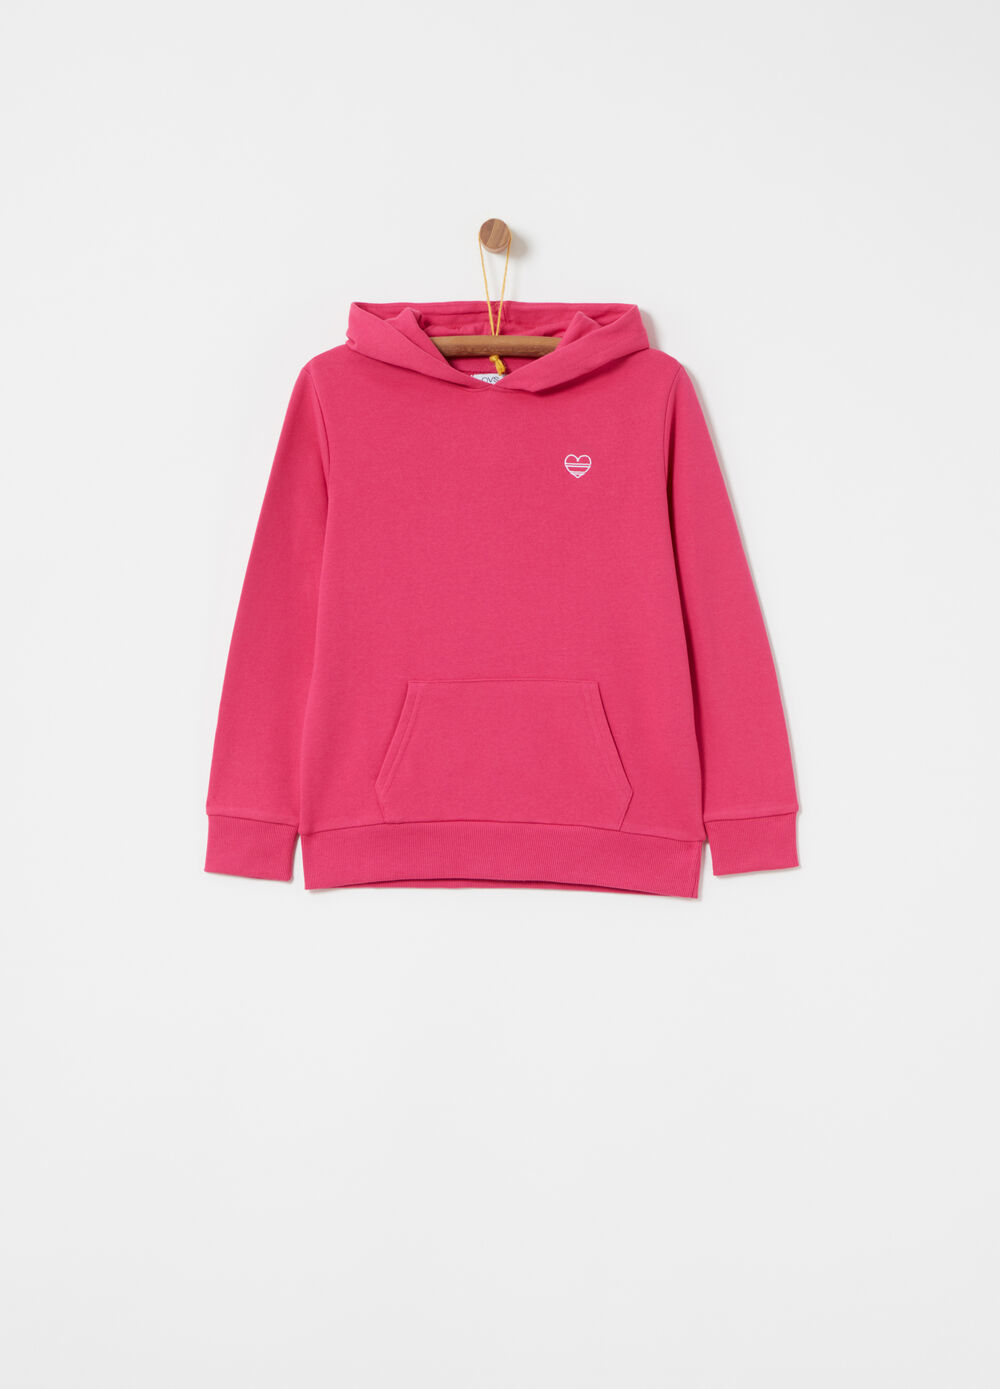 Sweatshirt with pouch pocket and hood